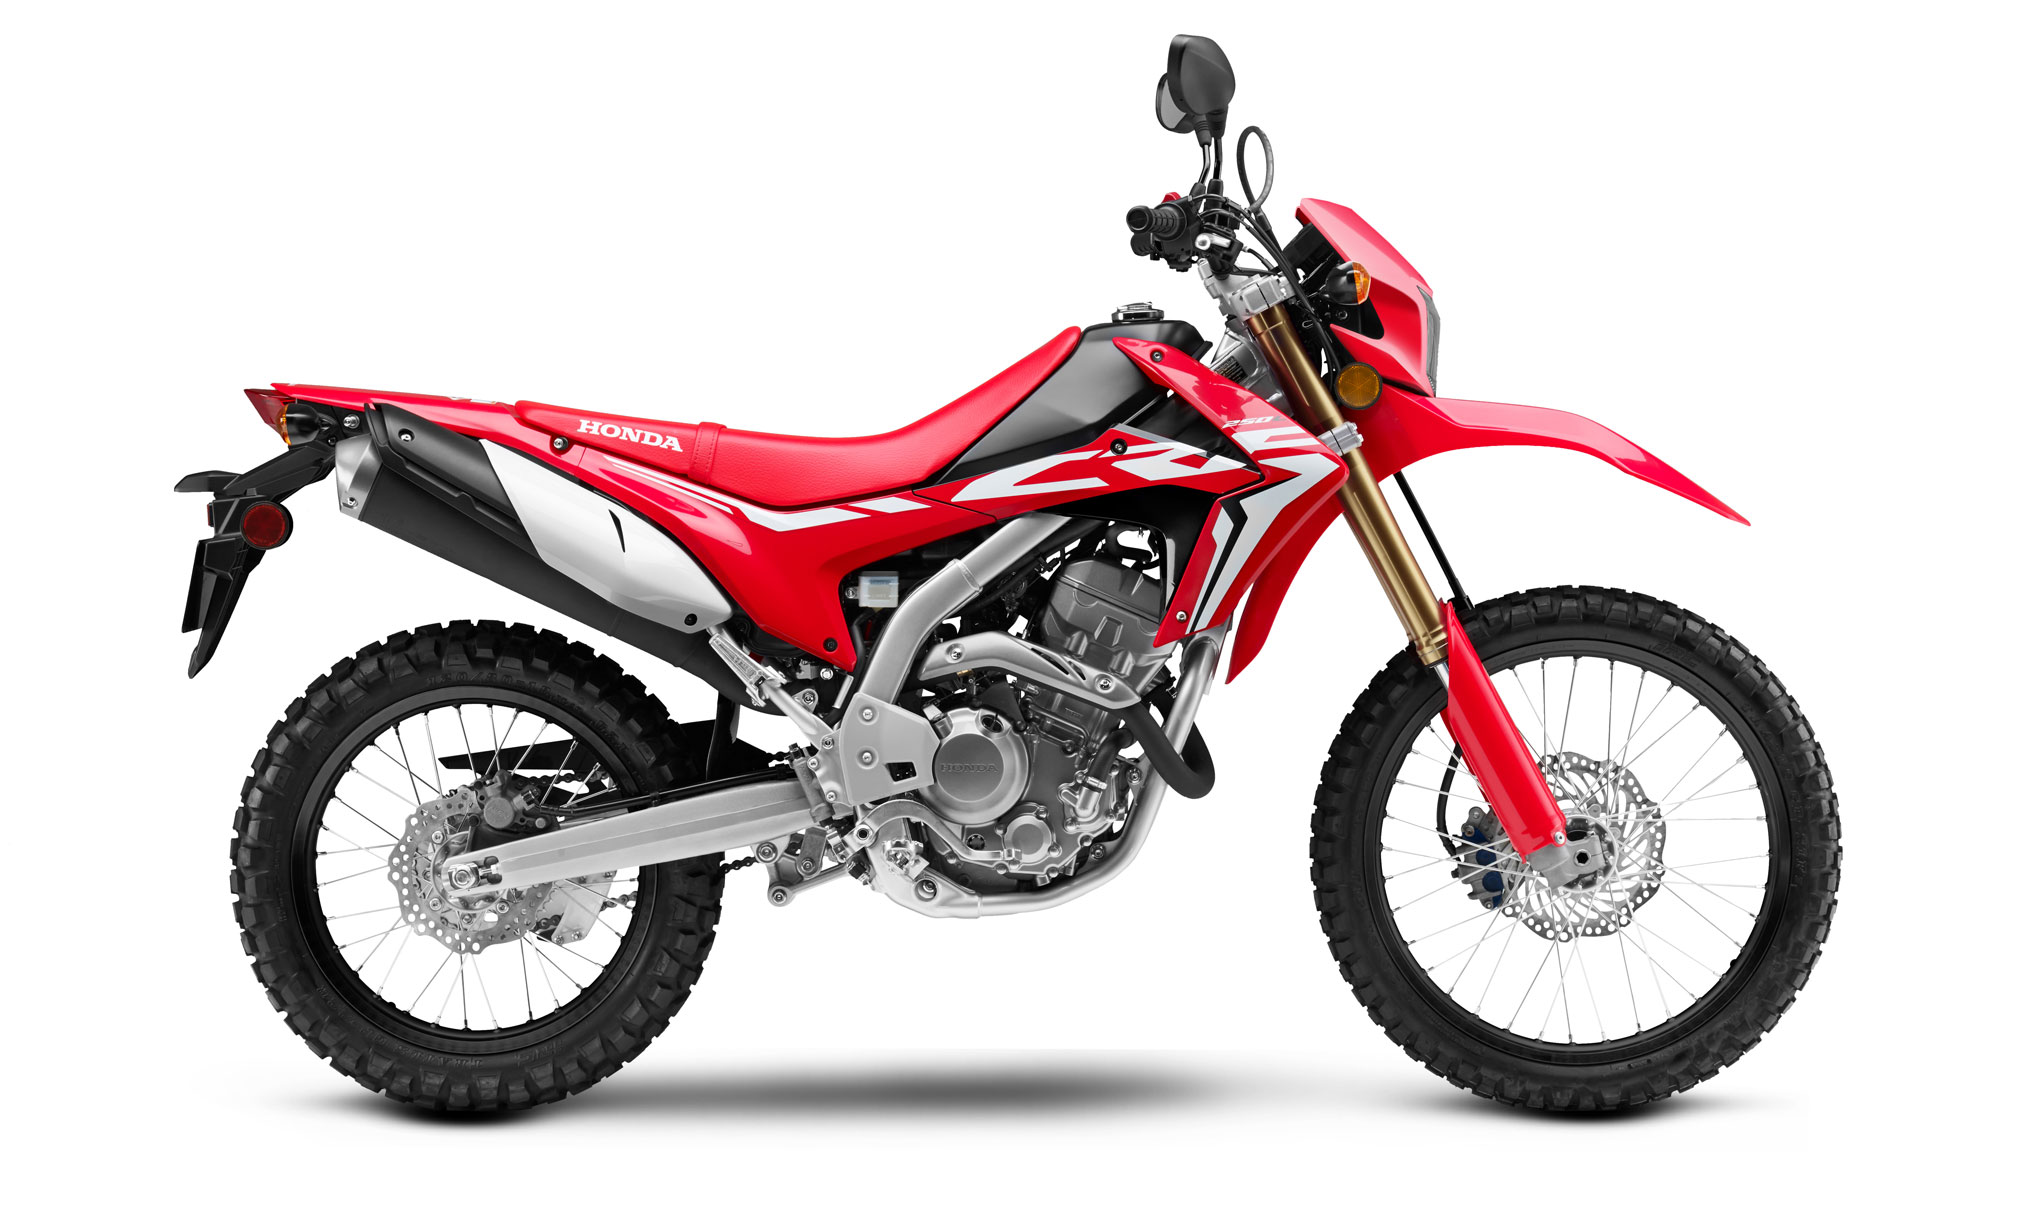 2019 Honda Crf250l Guide Total Motorcycle